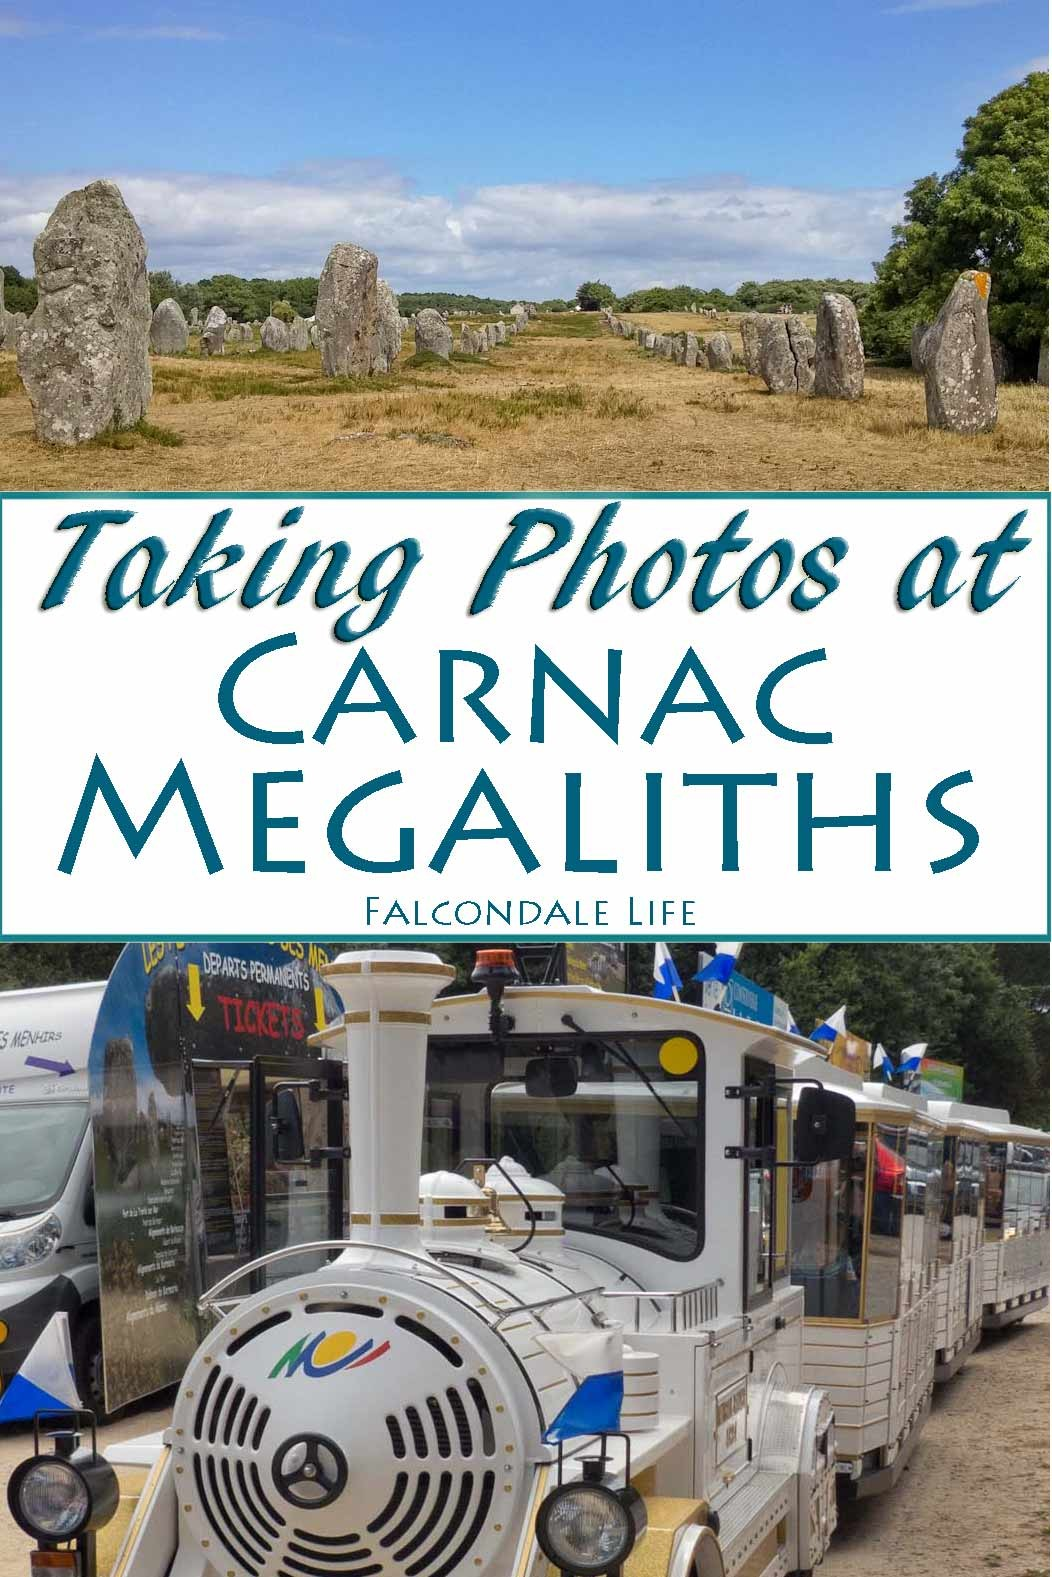 Taking Photos at Carnac Megaliths